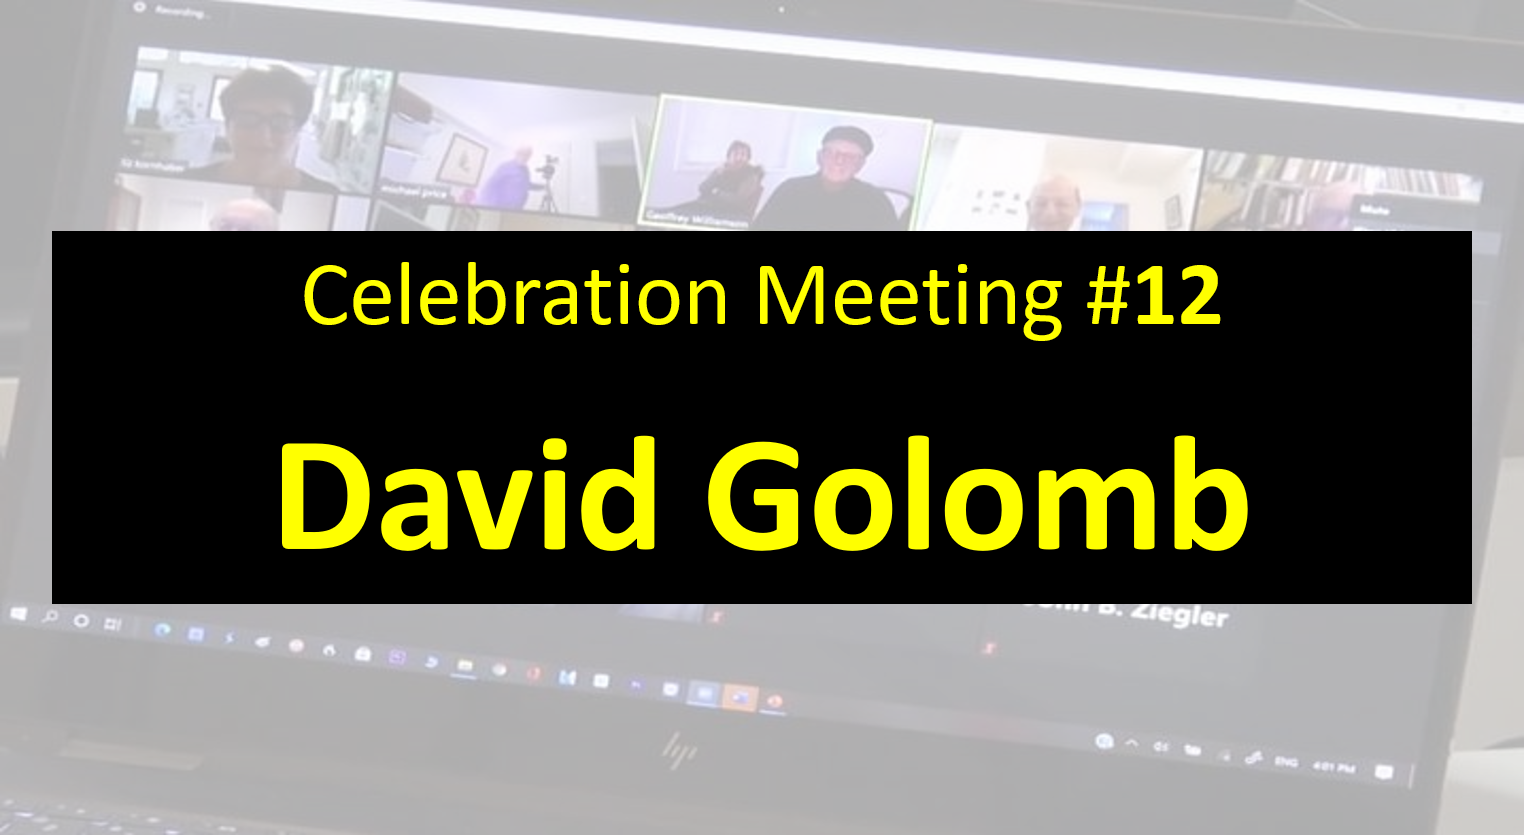 Celebration Meeting - #12 - David Golomb